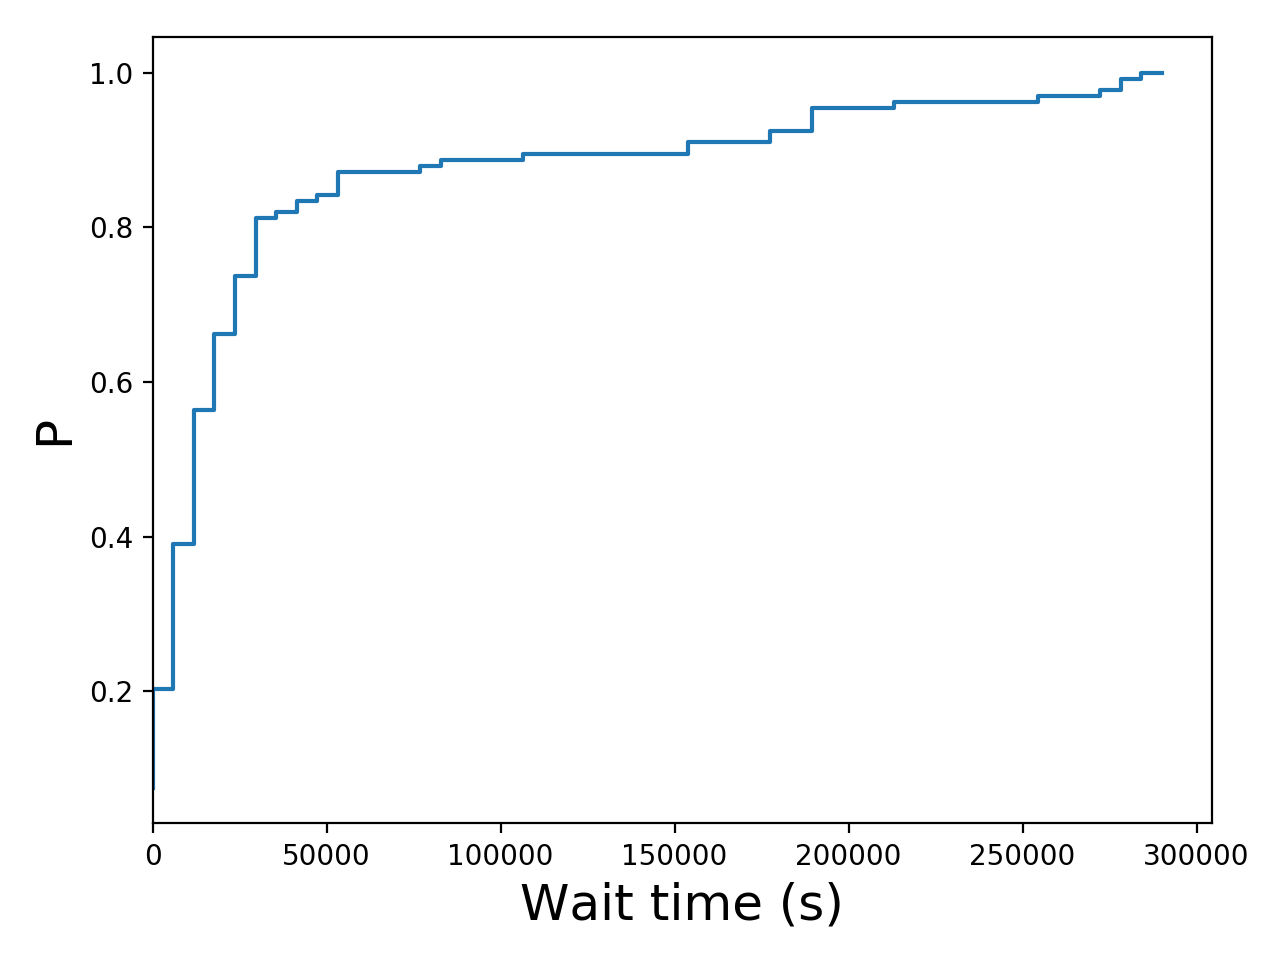 Task wait time CDF graph for the Pegasus_P5 trace.